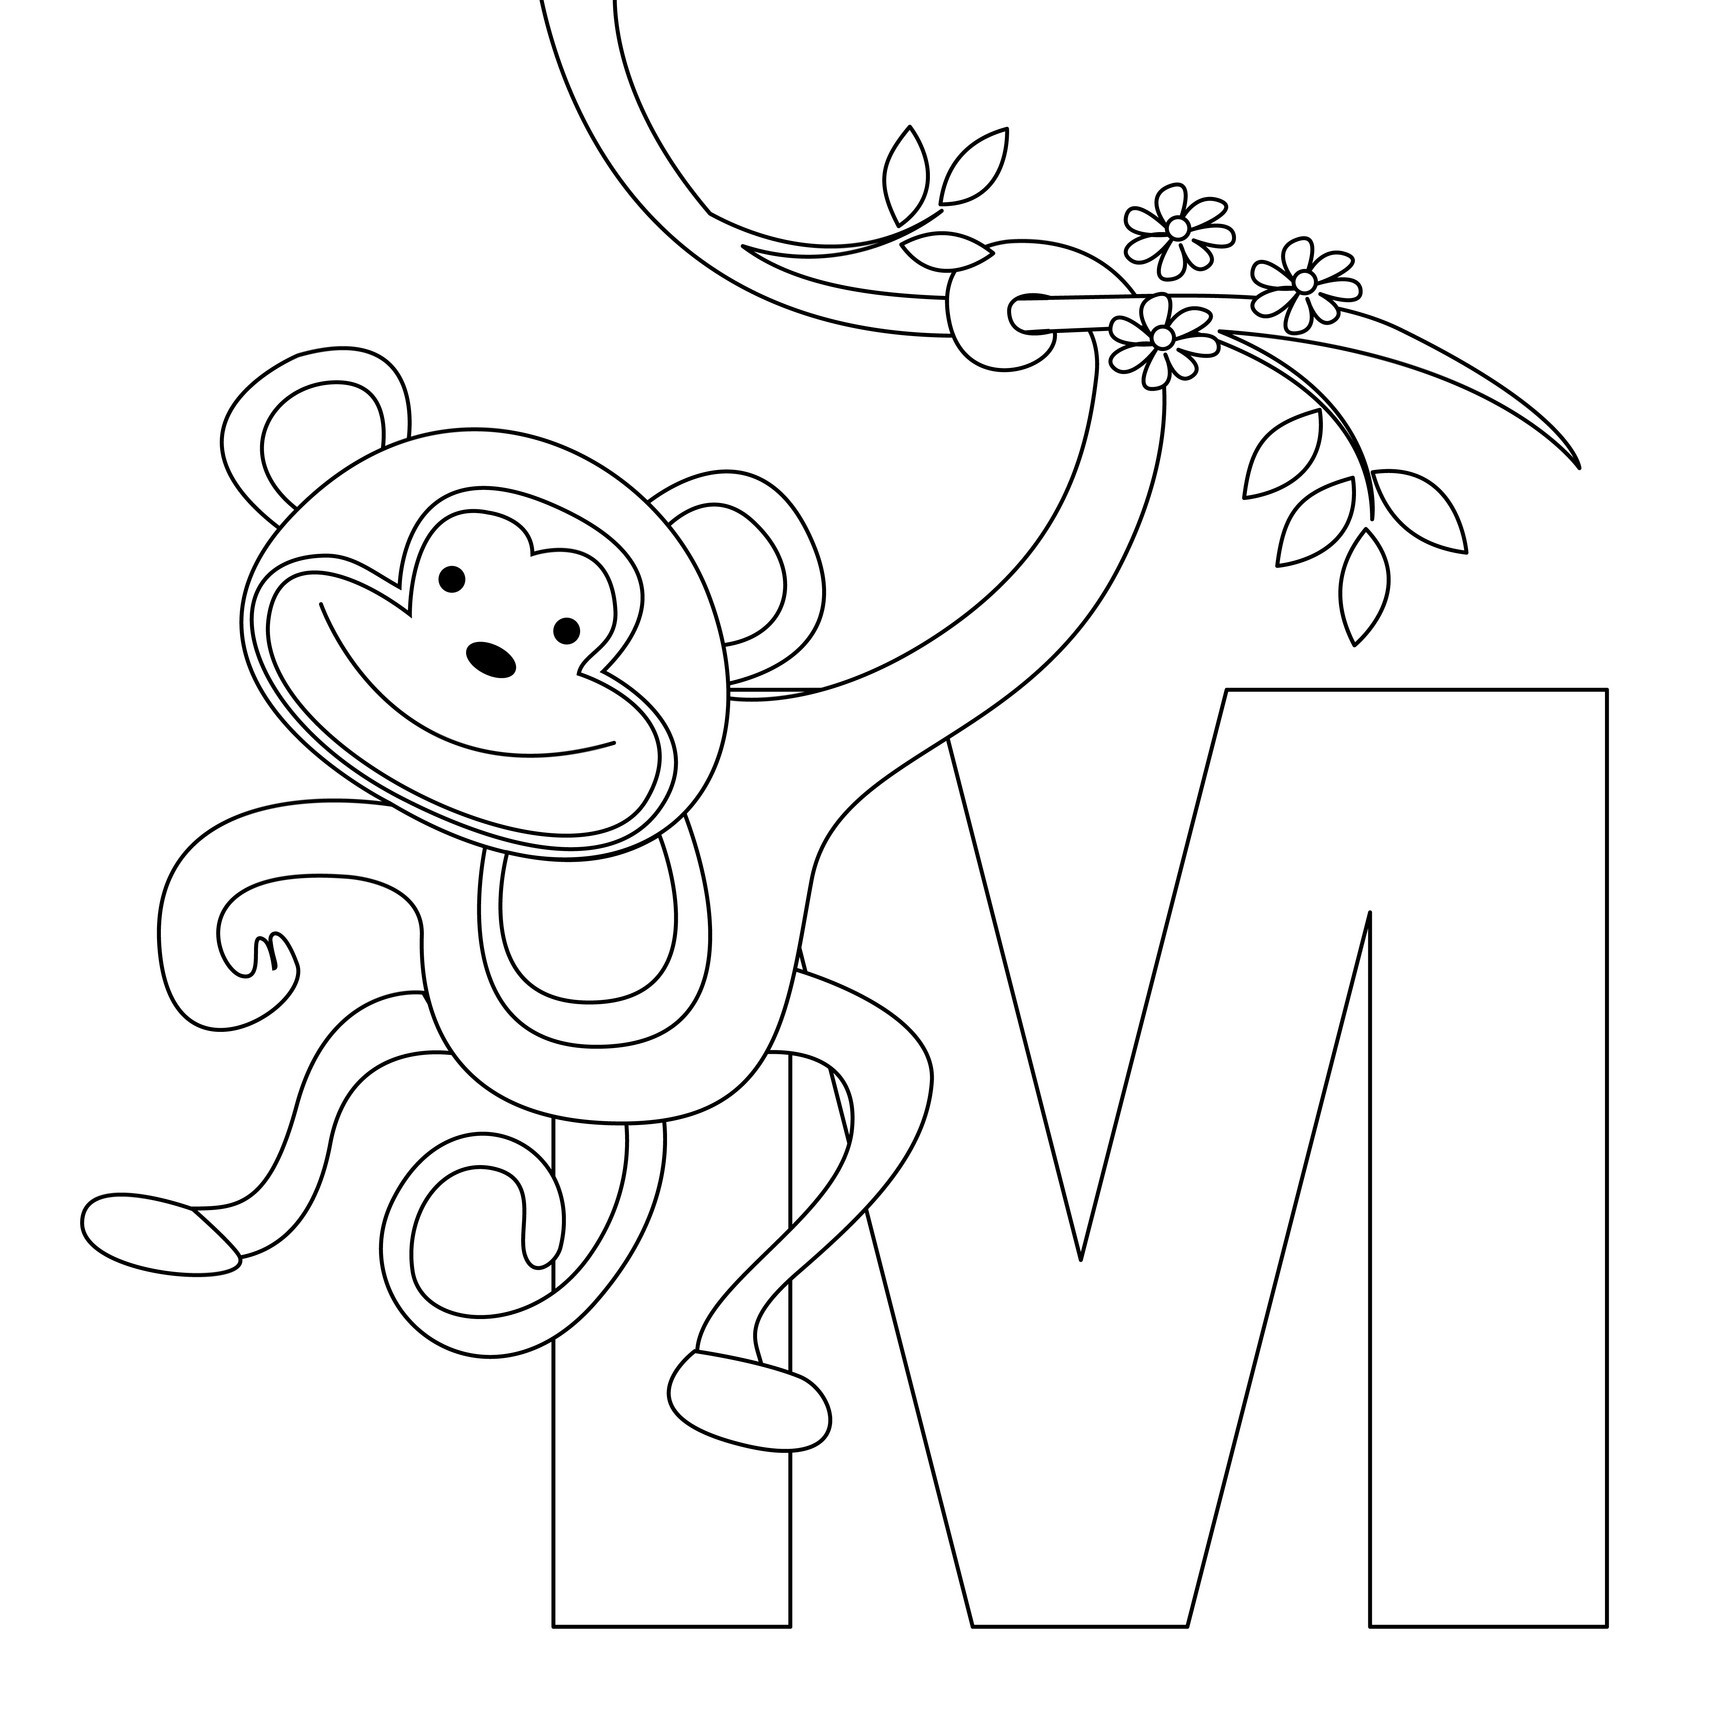 Alphabet Coloring Pages Letter E ABC T Printable